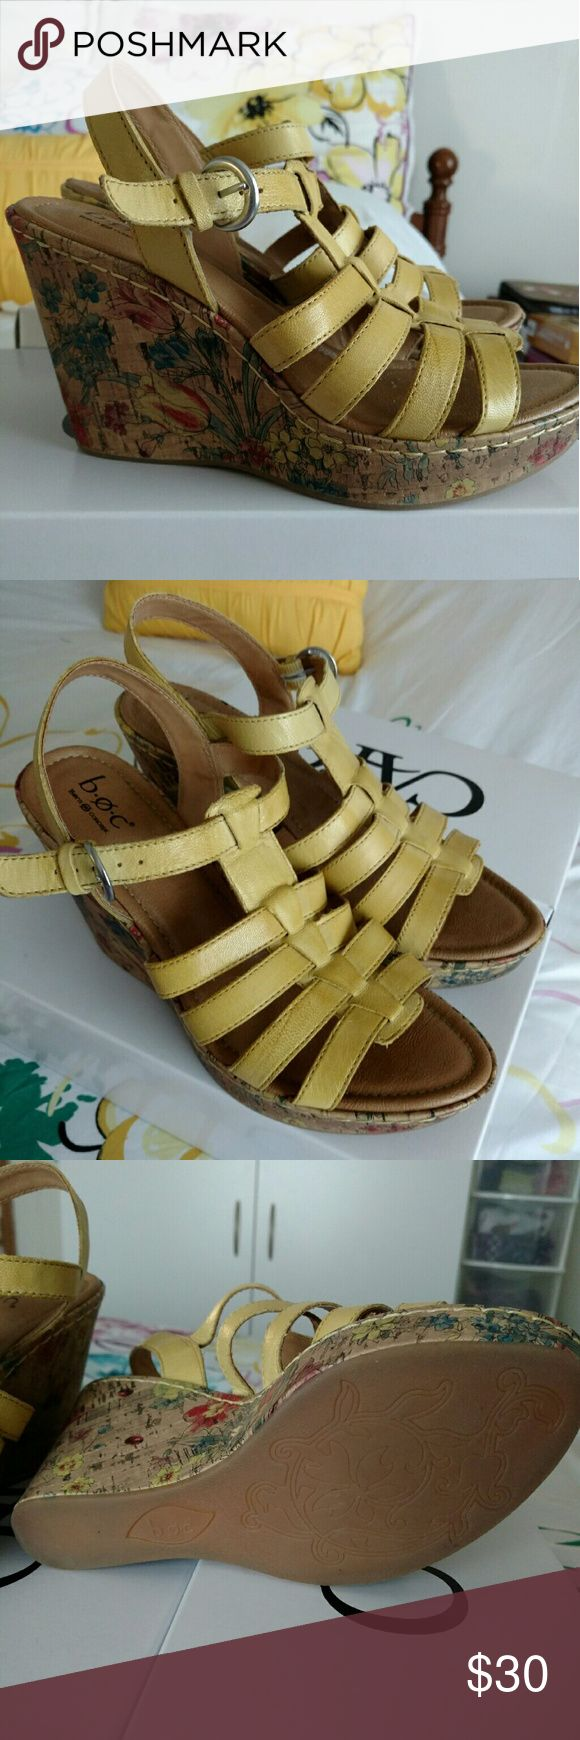 Born Yellow Wedge Sandals Like New. Only worn a few times. Born Shoes